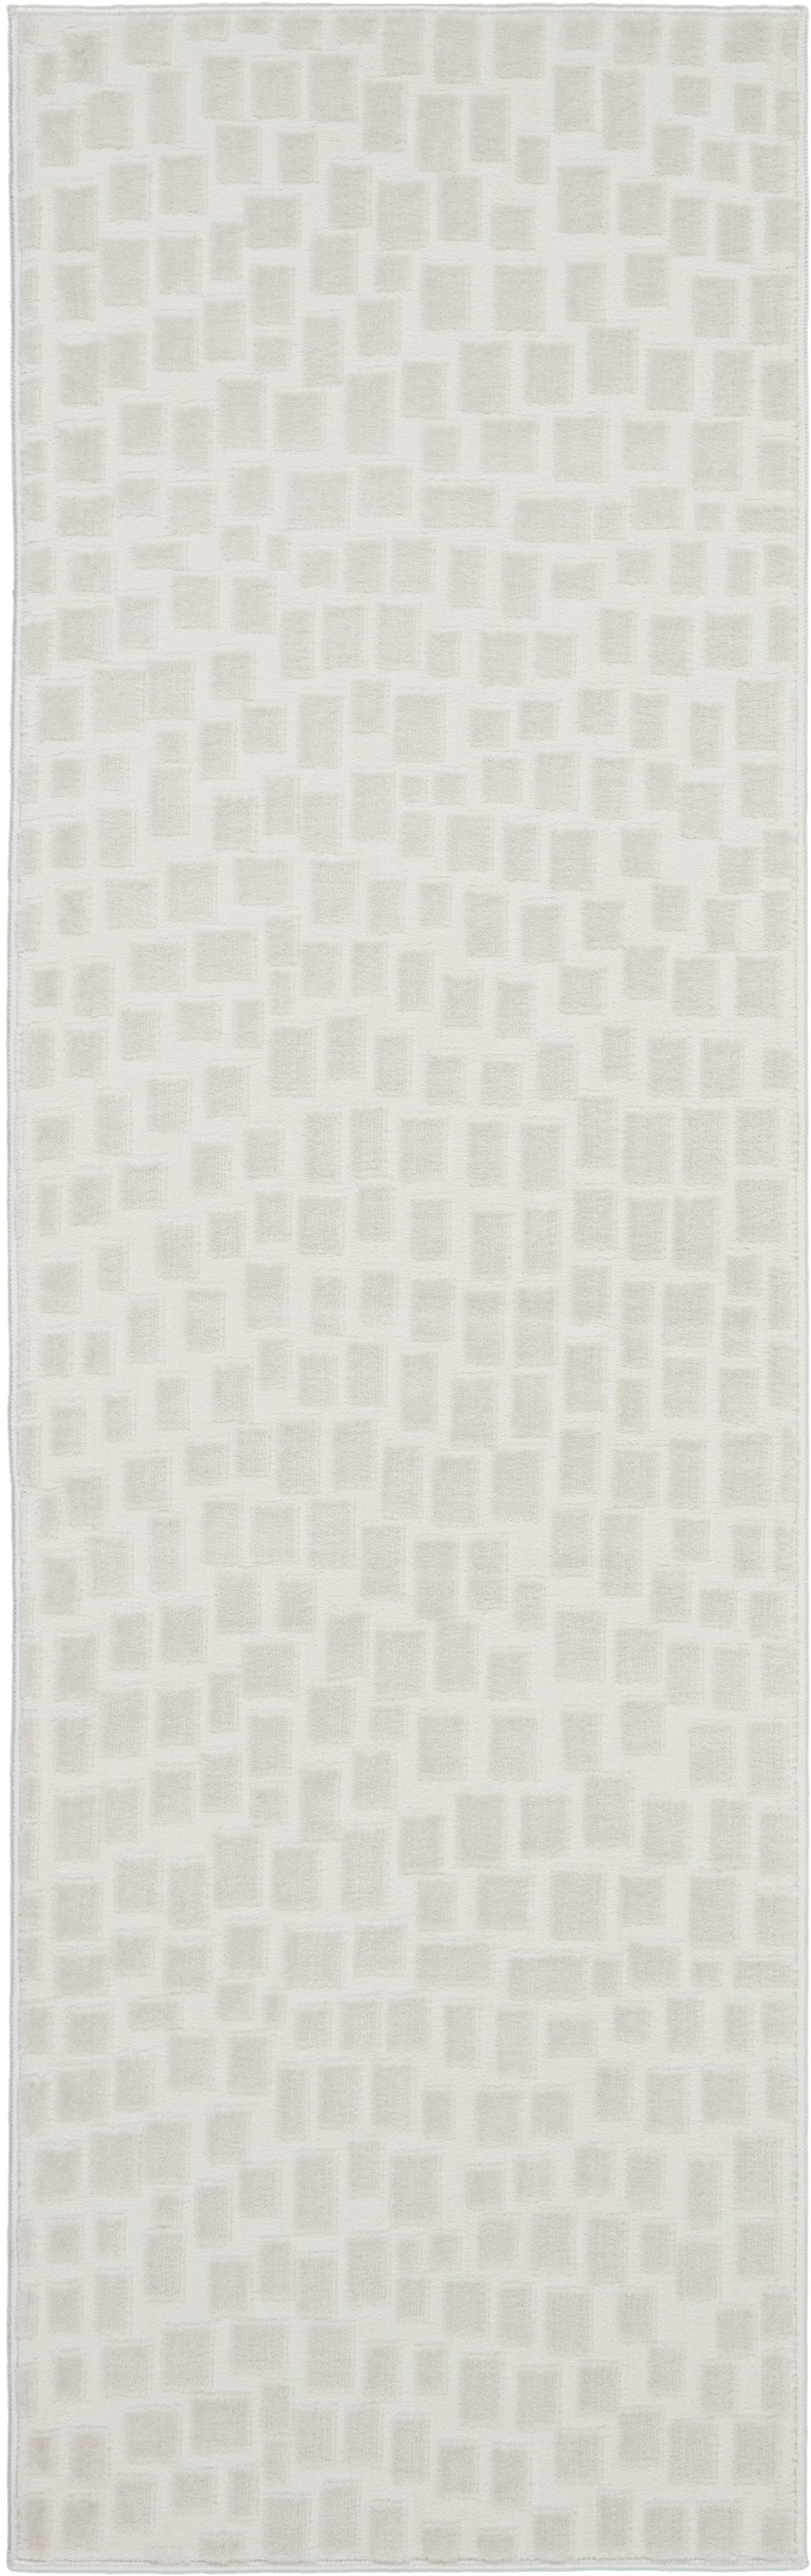 Urban Chic URC03 Area Rug - Flooring Mats and Turf